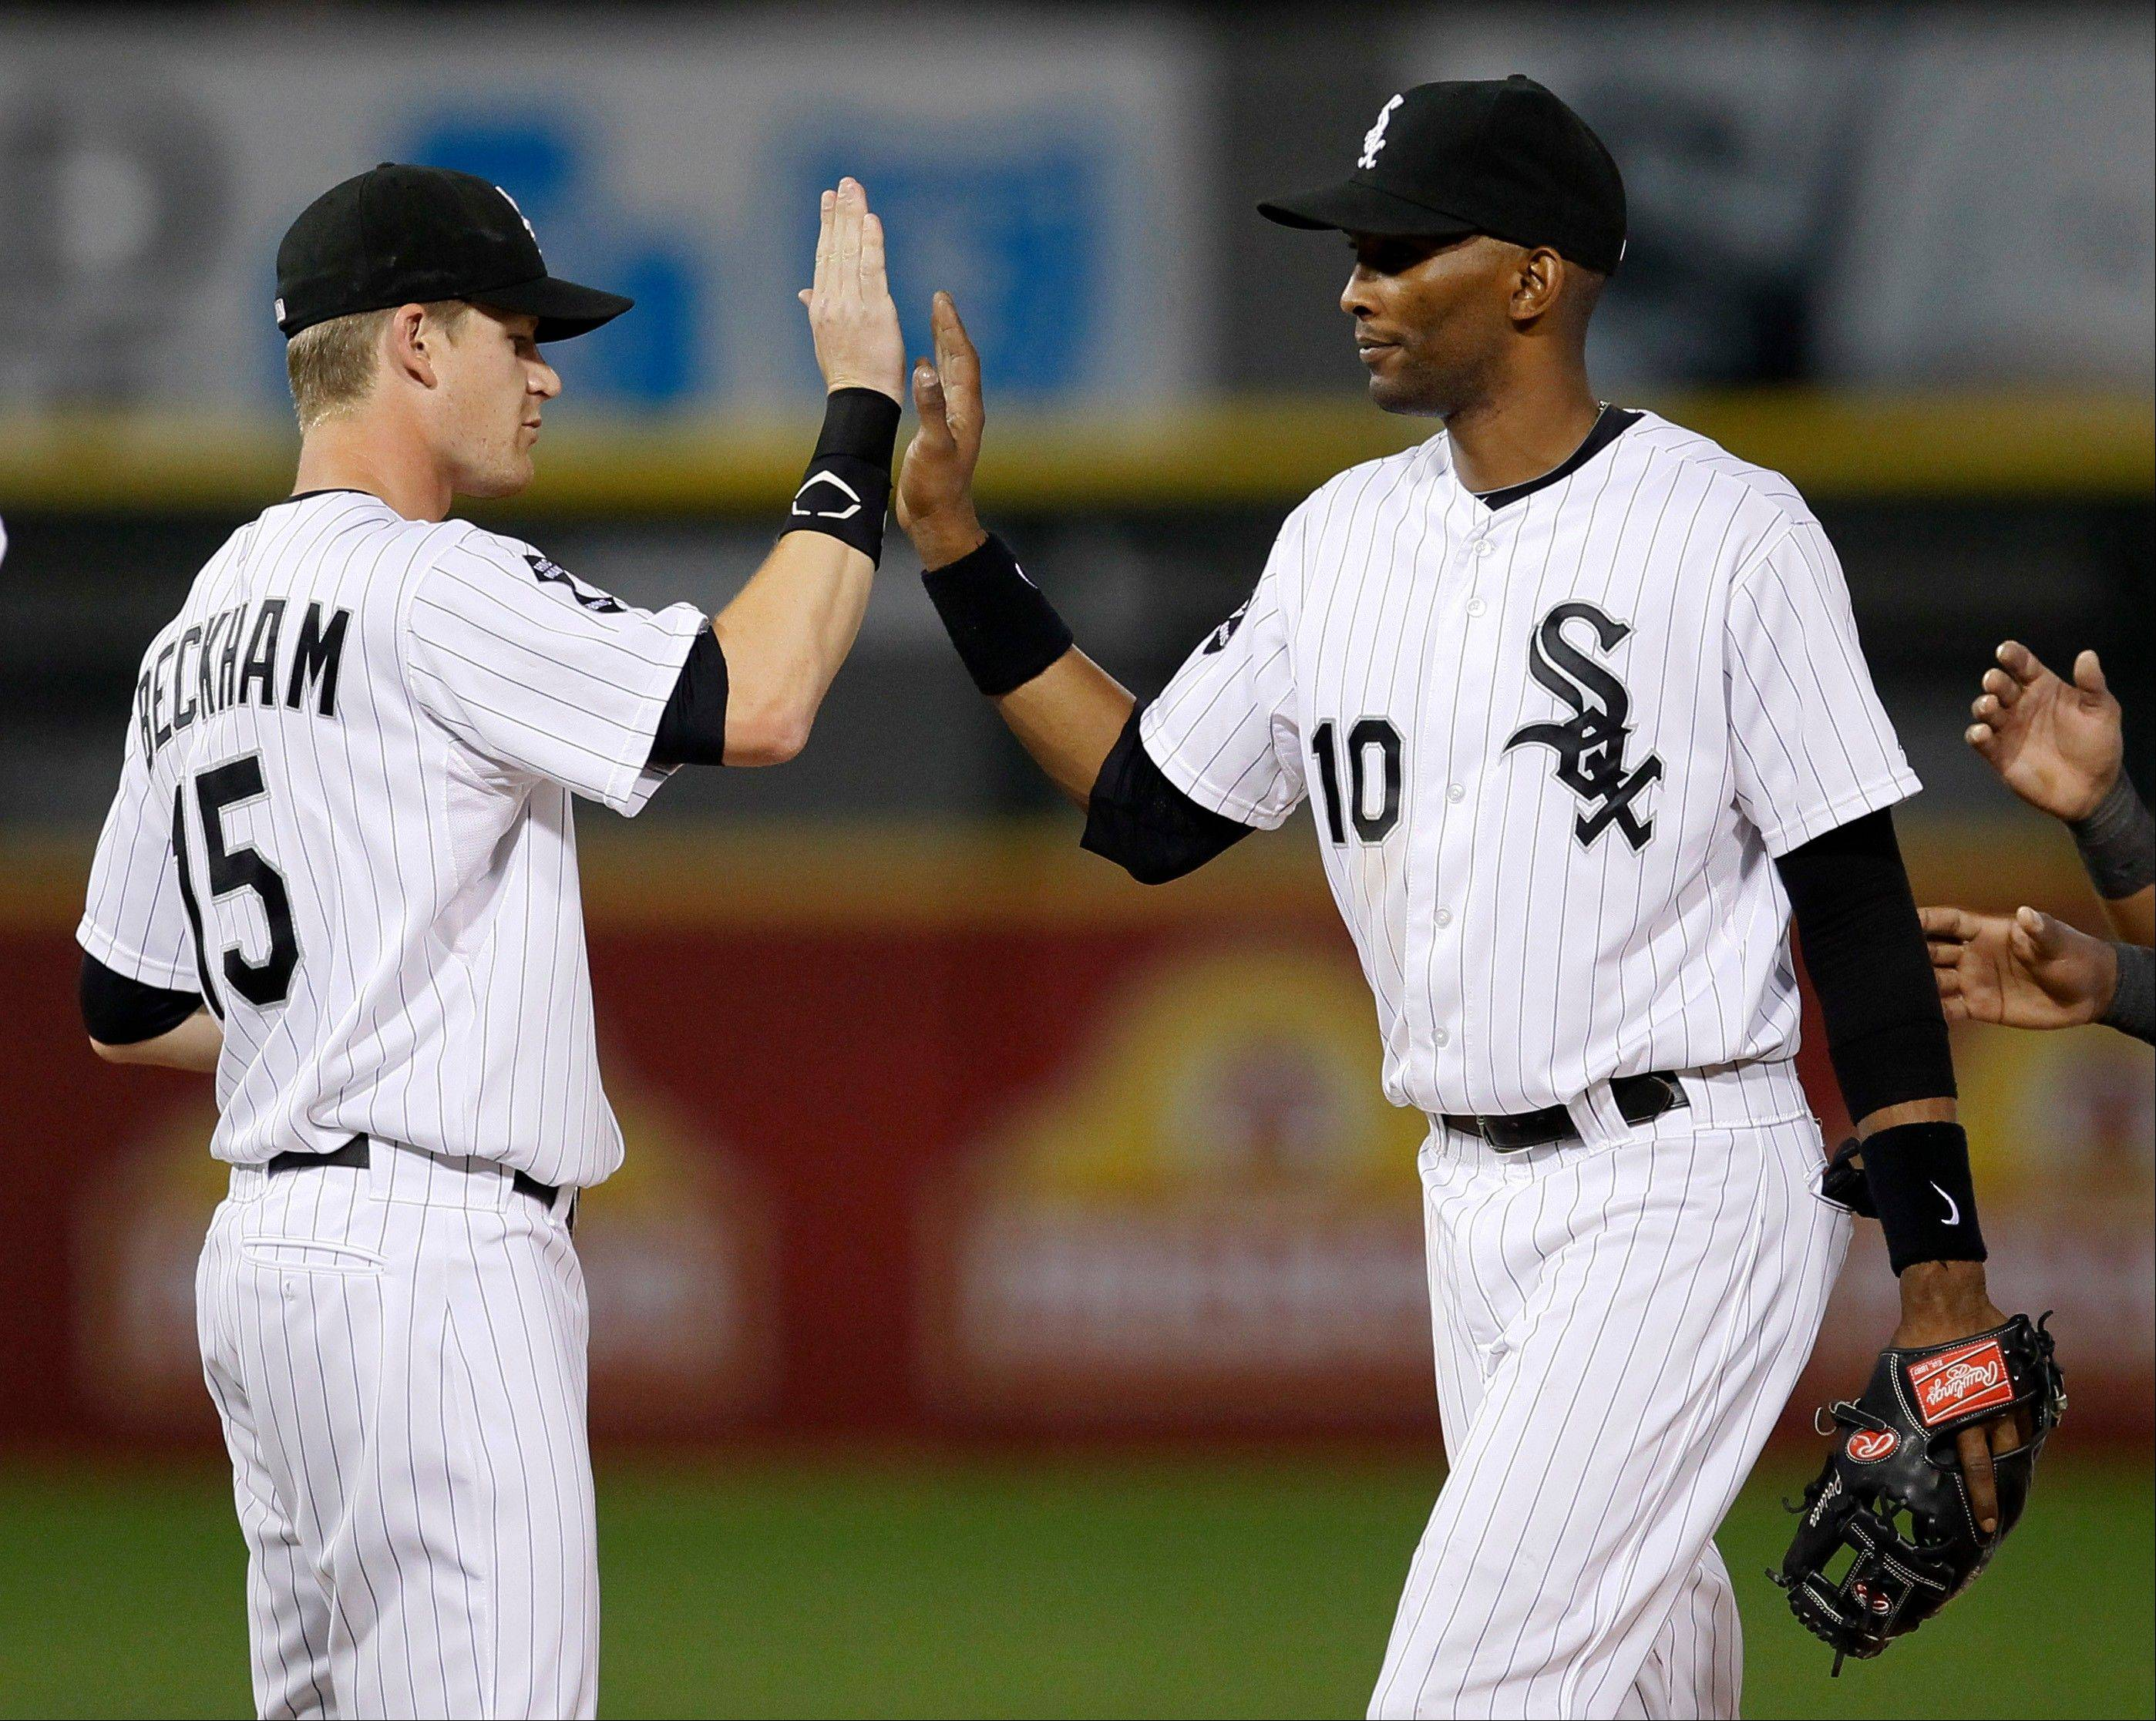 Chicago White Sox second baseman Gordon Beckham, left, and shortstop Alexei Ramirez celebrate their 7-0 win over the Chicago Cubs.